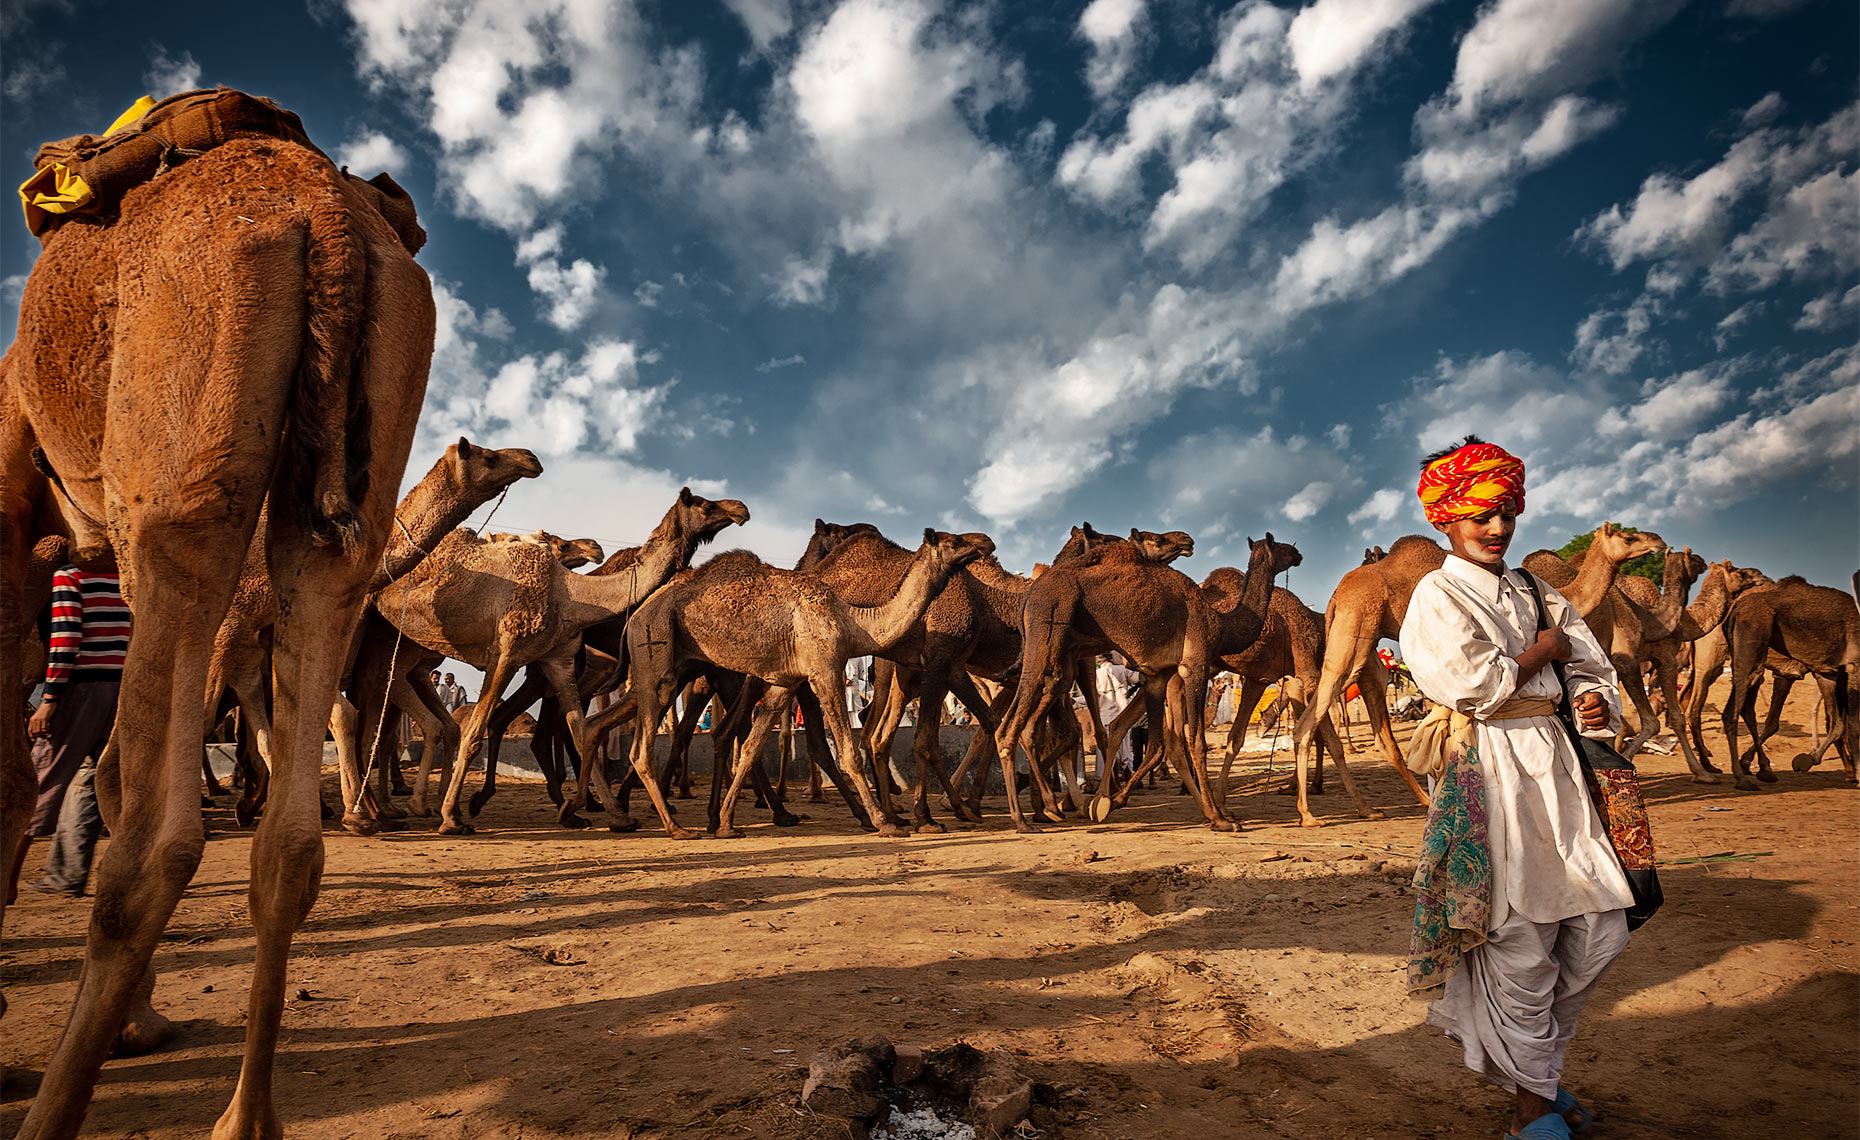 pushkar-camel-fair-rajastan-india